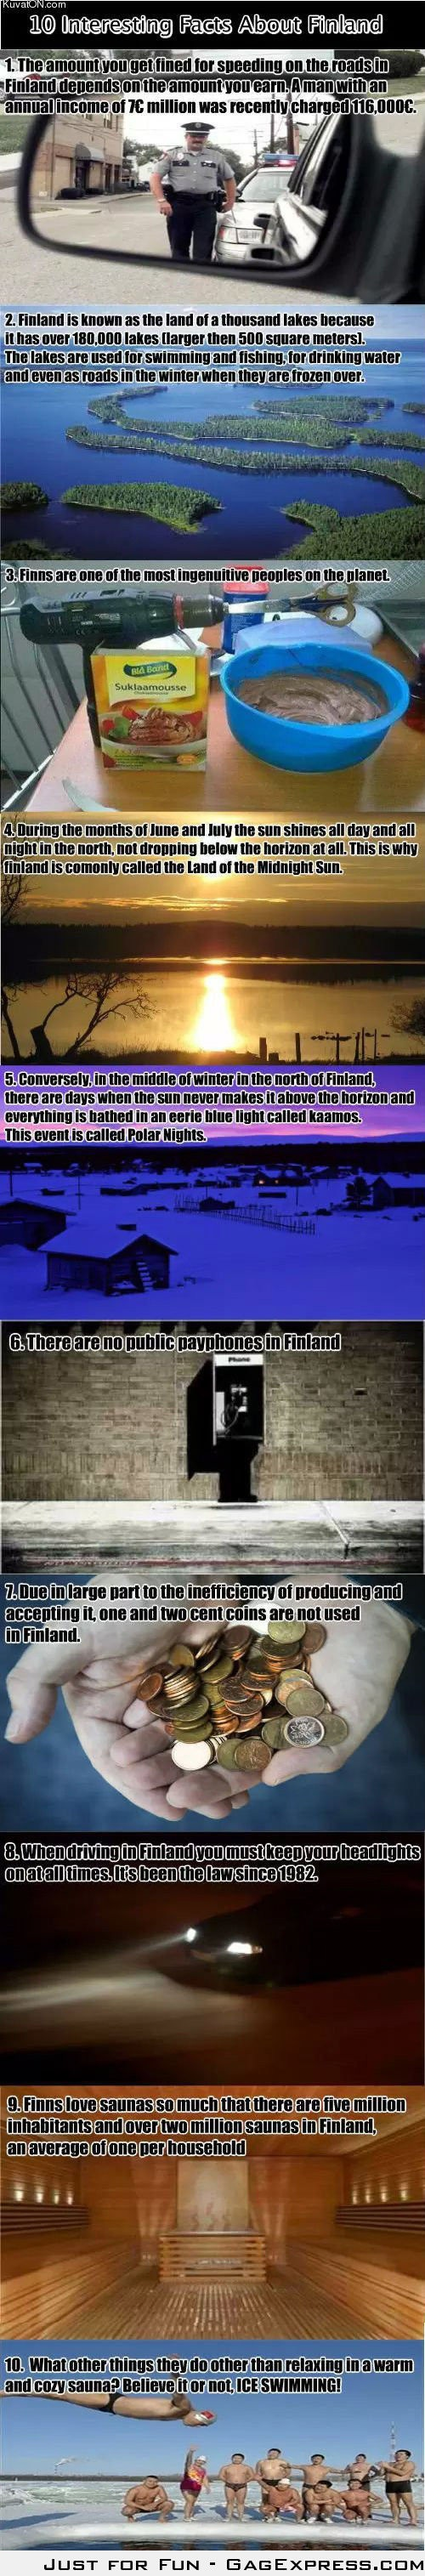 10 Interesting facts about Finland.